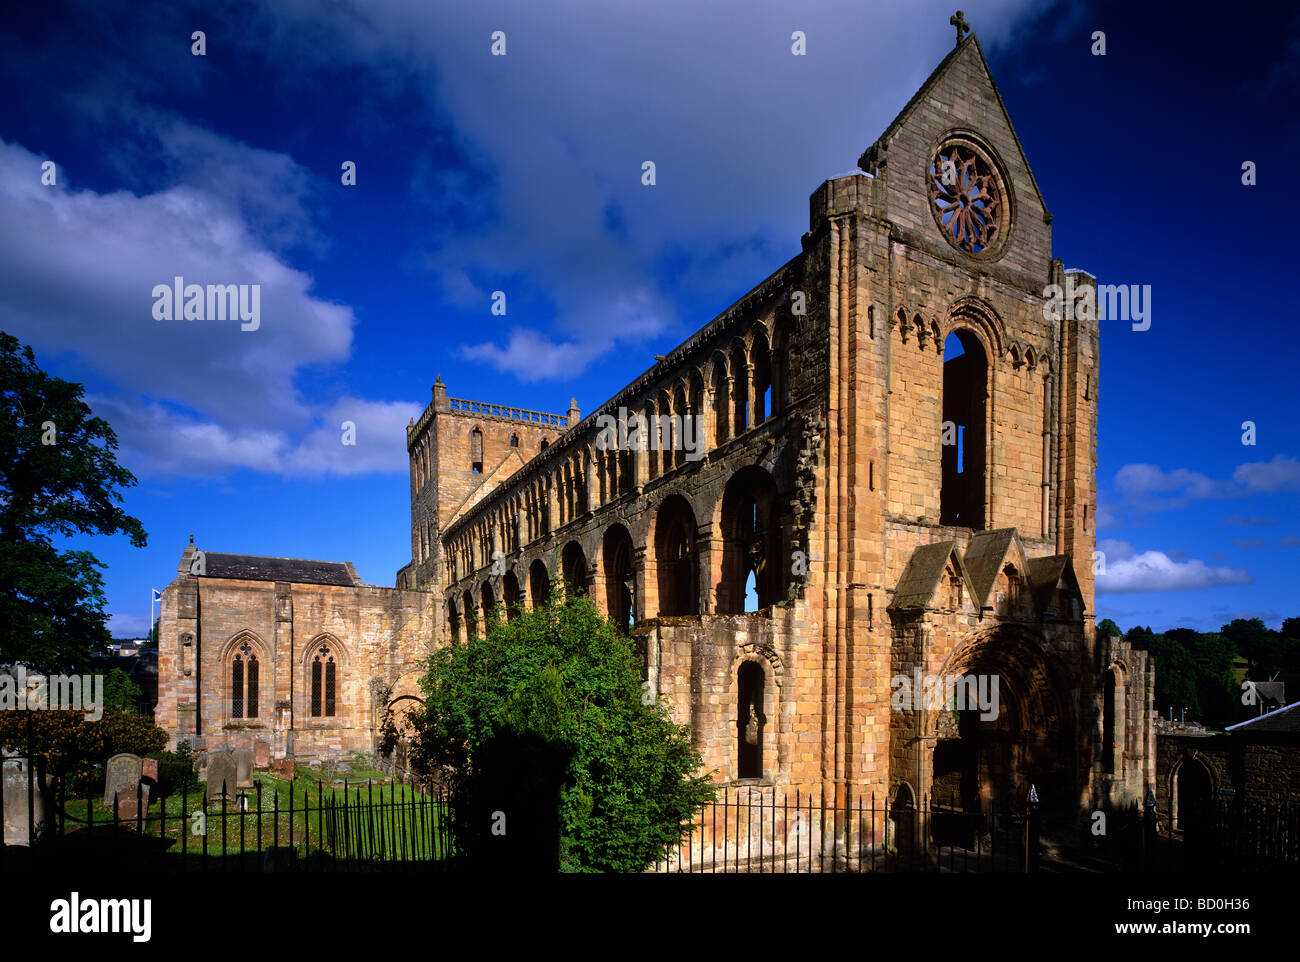 A late summer evening view of Jedburgh Abbey, Jedburgh, Scottish Borders - Stock Image